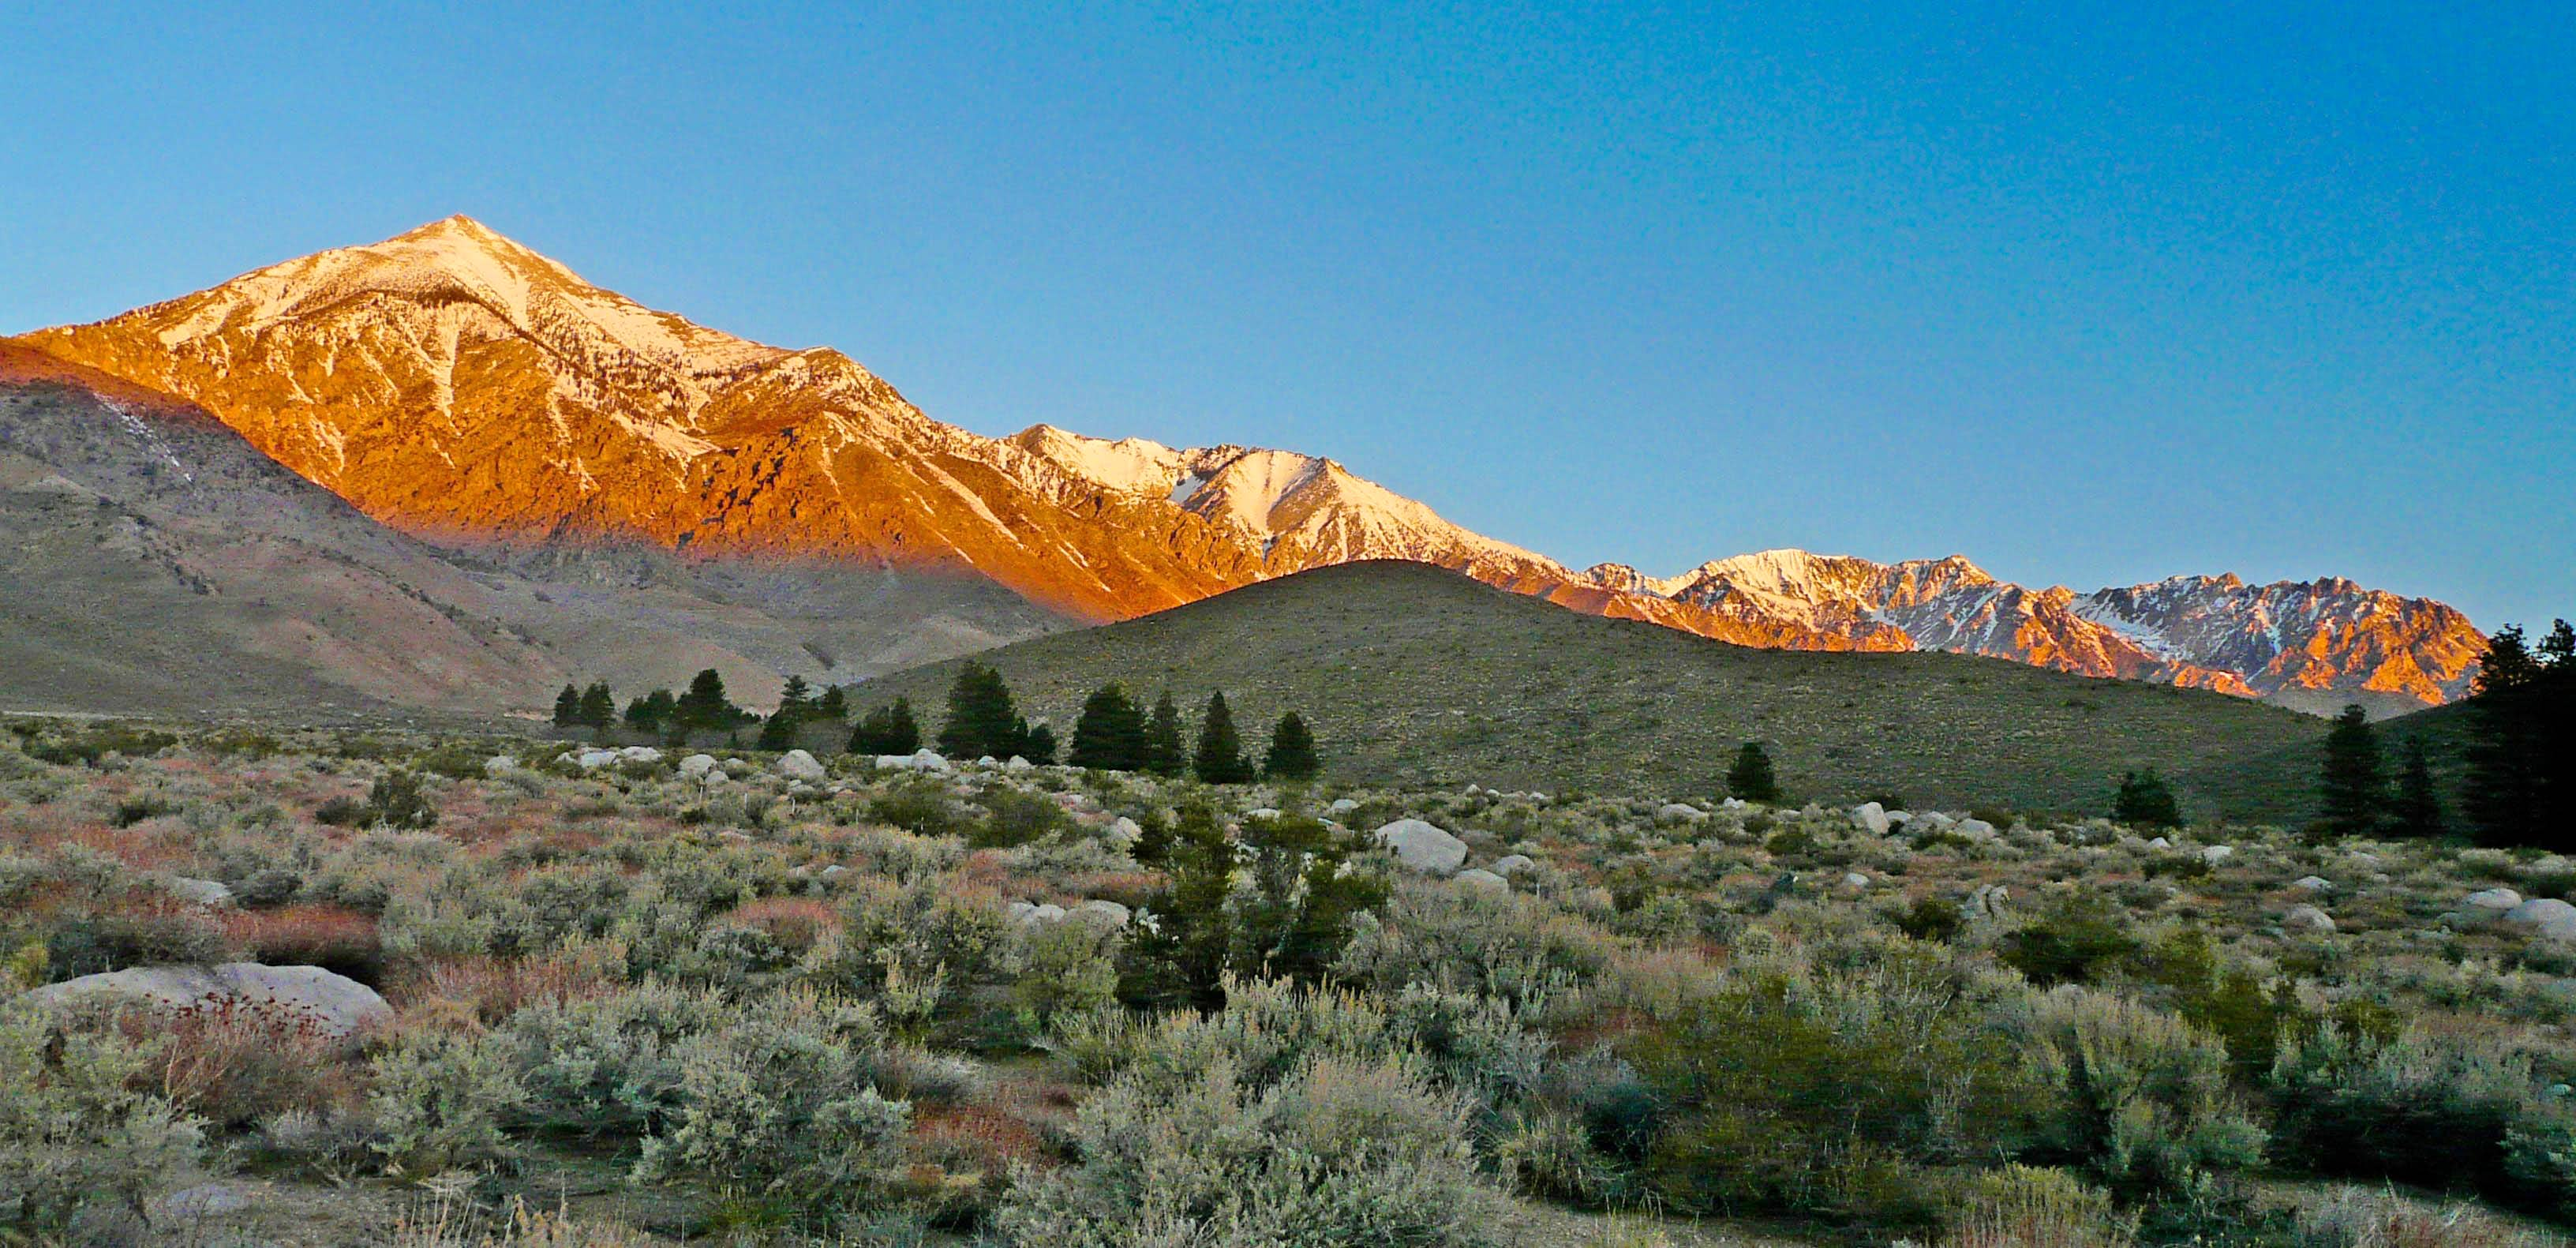 Eastern Sierra Independence Creek